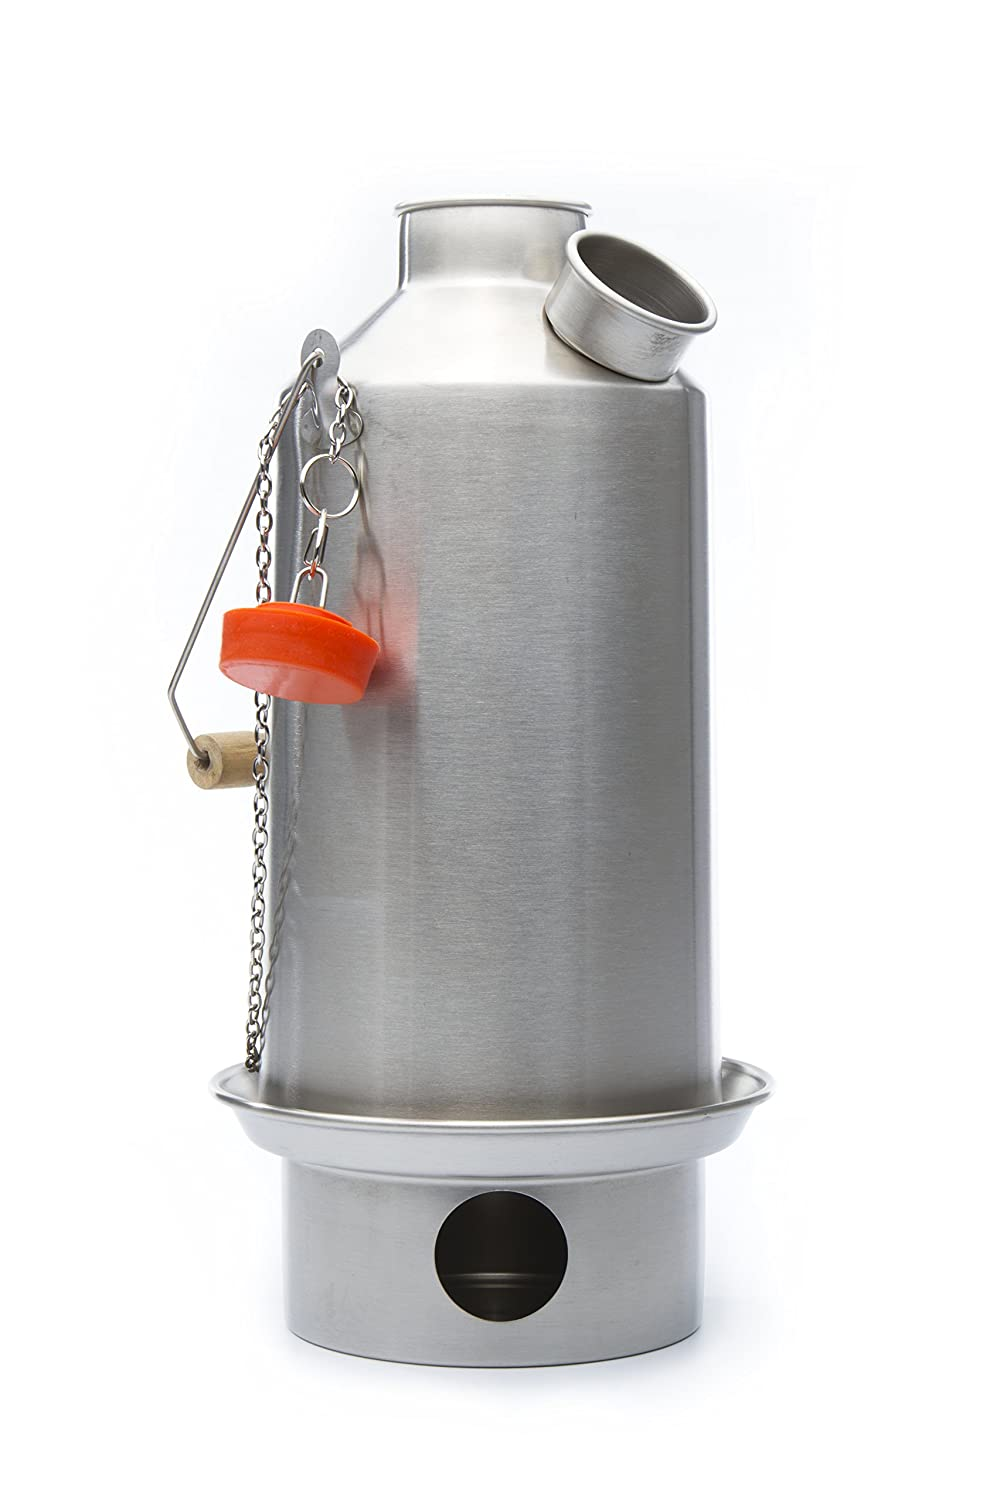 'Base Camp' Stainless Steel Kelly Kettle® 1.6 ltr (NEW MODEL - Now with Green Whistle which replaces the Orange Stopper) Camping Kettle and Camp Stove in one. Ultra fast lightweight wood fuelled stove. NO Batteries, NO Gas, FREE Fuel! For fishing, hunting